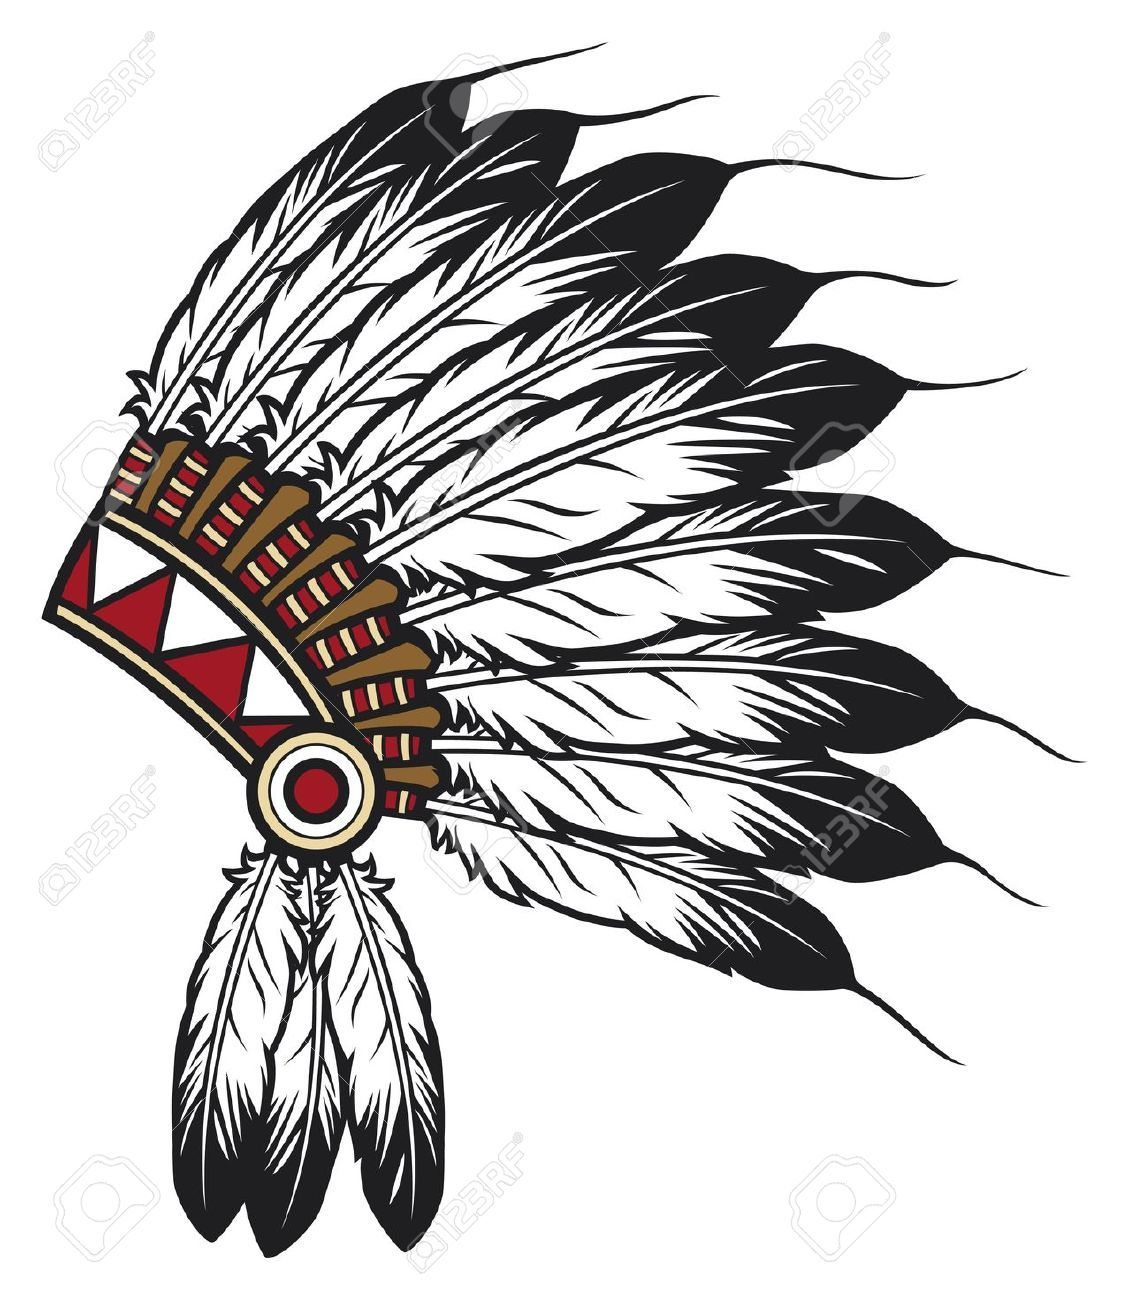 Indian Chief Stock Illustrations Cliparts And Royalty